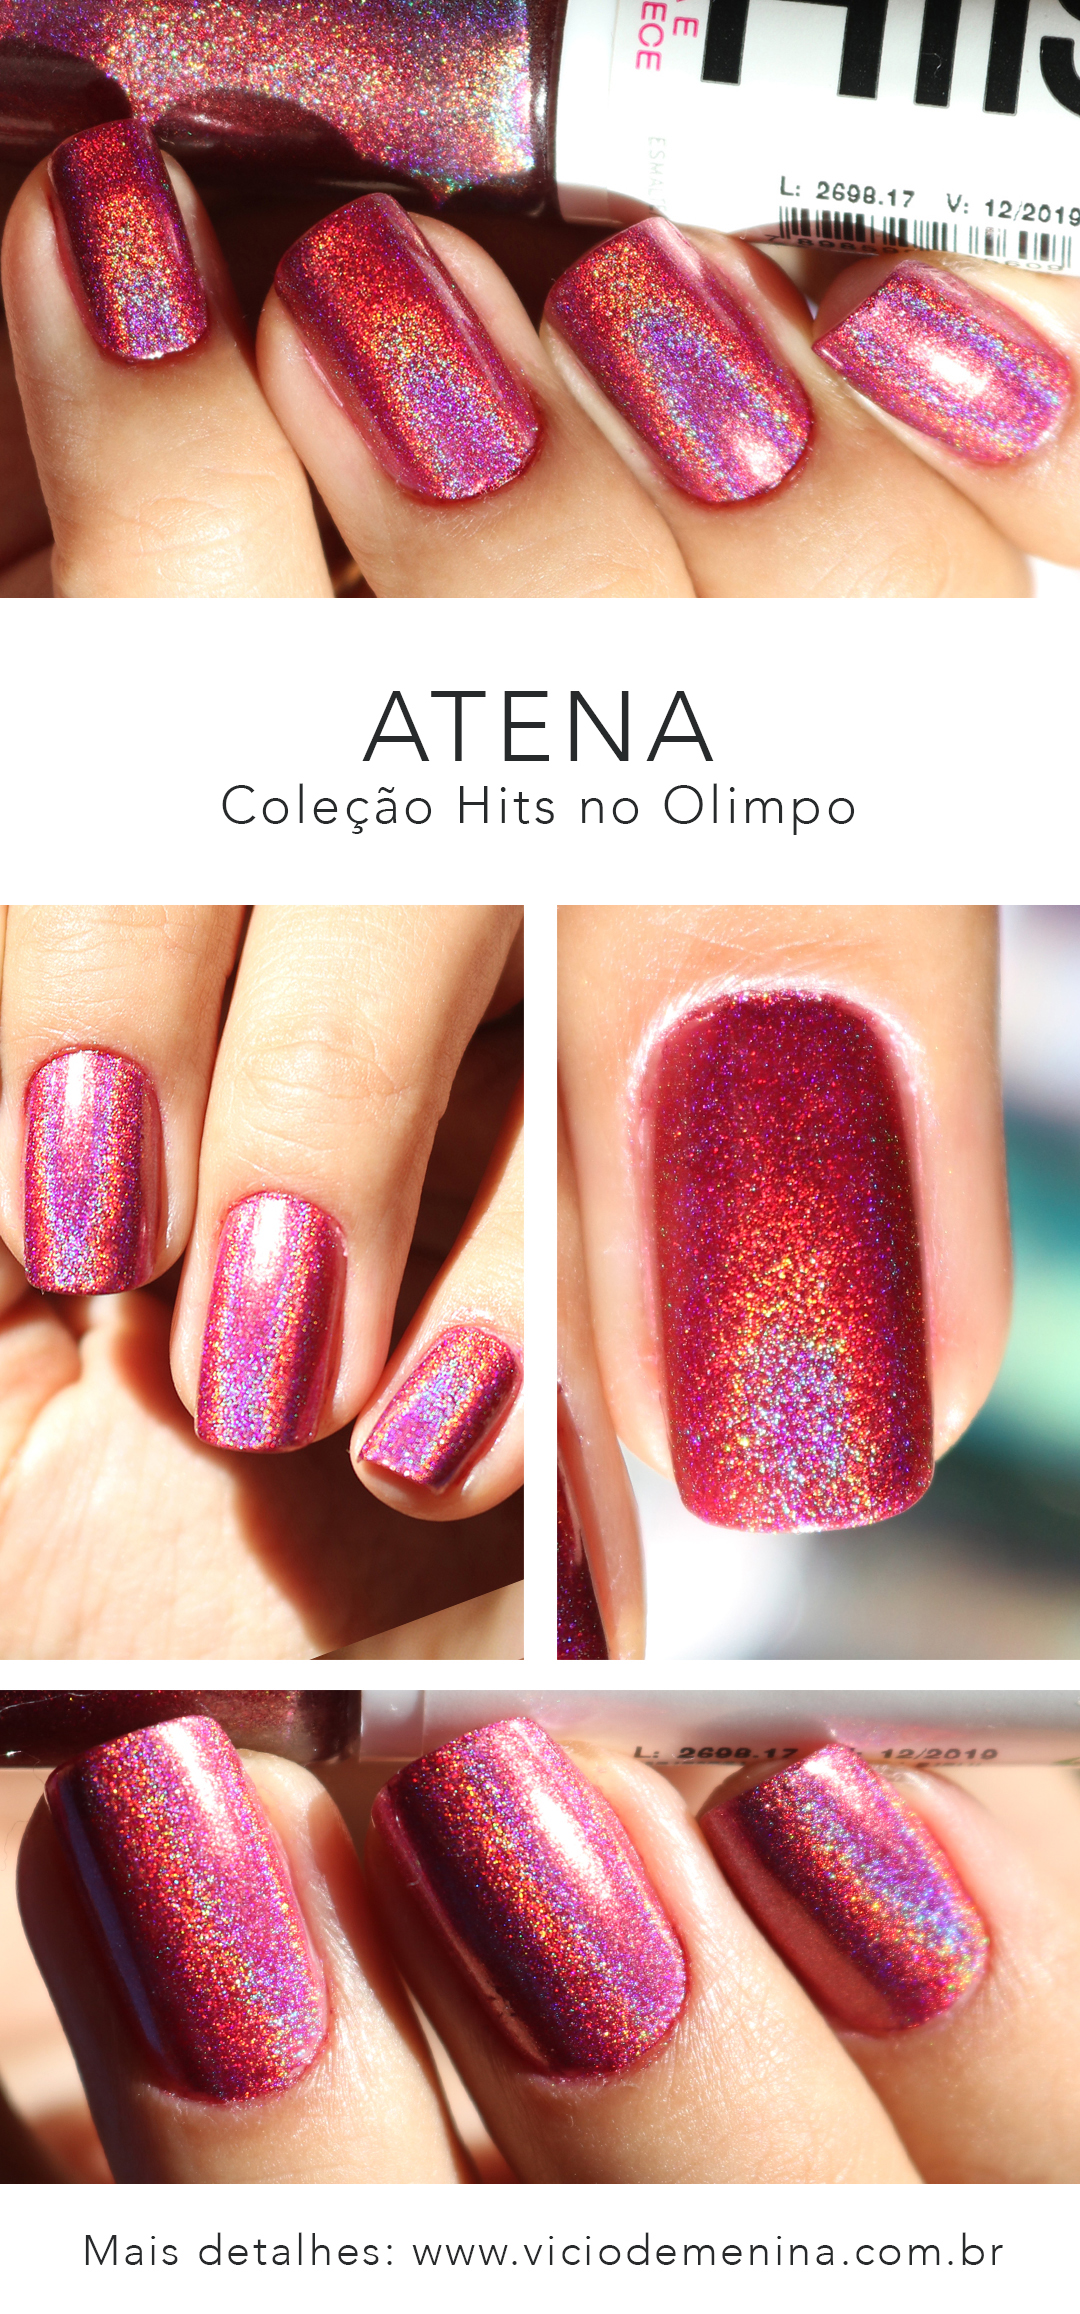 Atena_Hits_pinterest copy copy